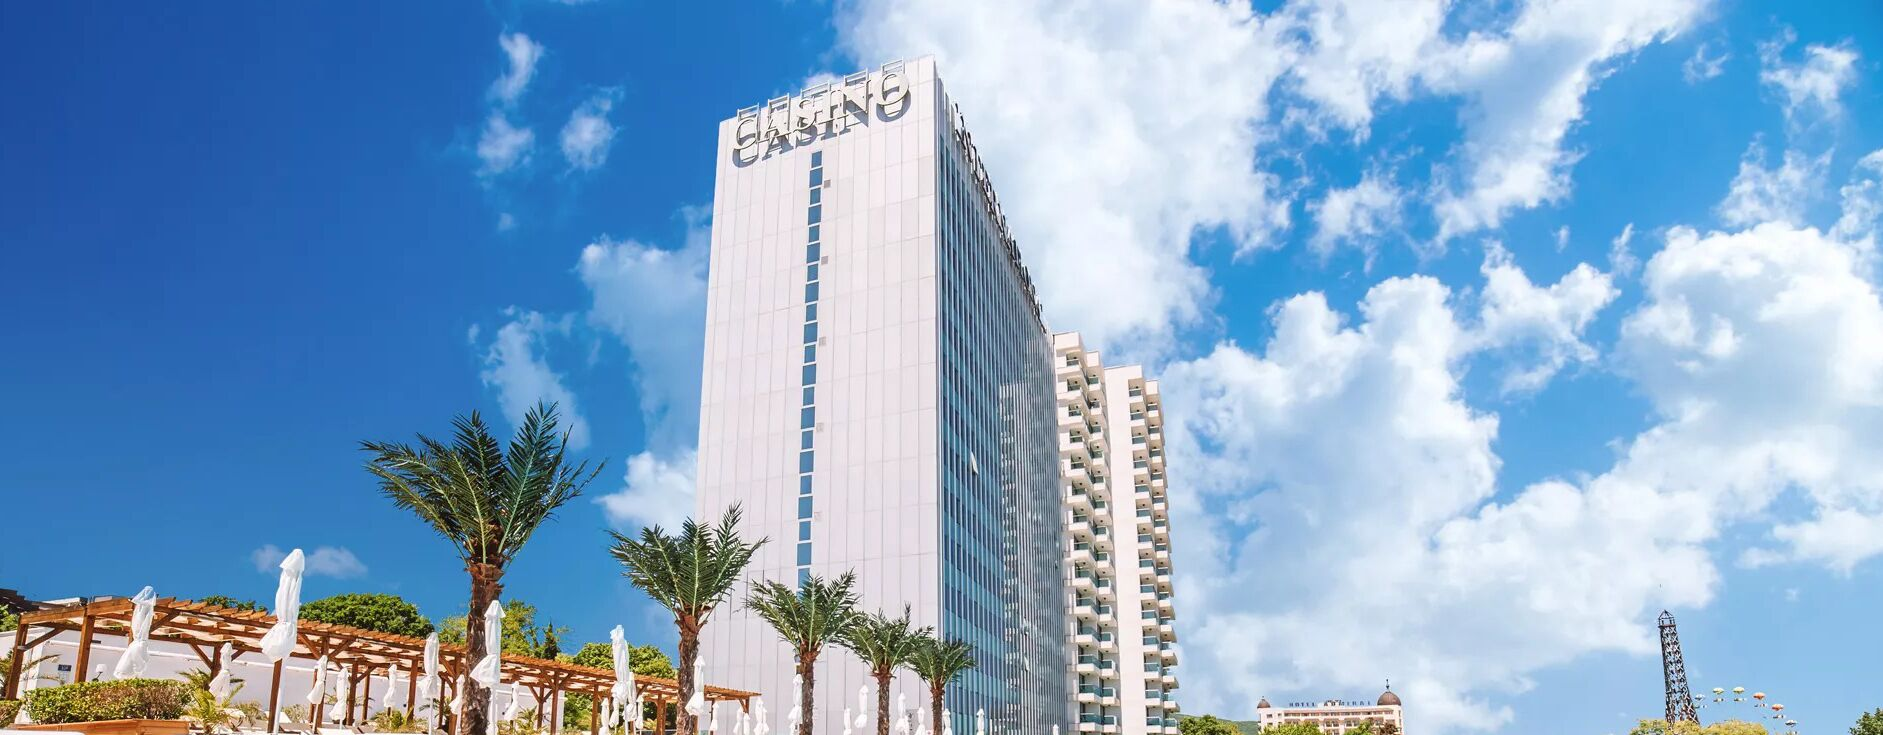 International Casino And Tower Suites